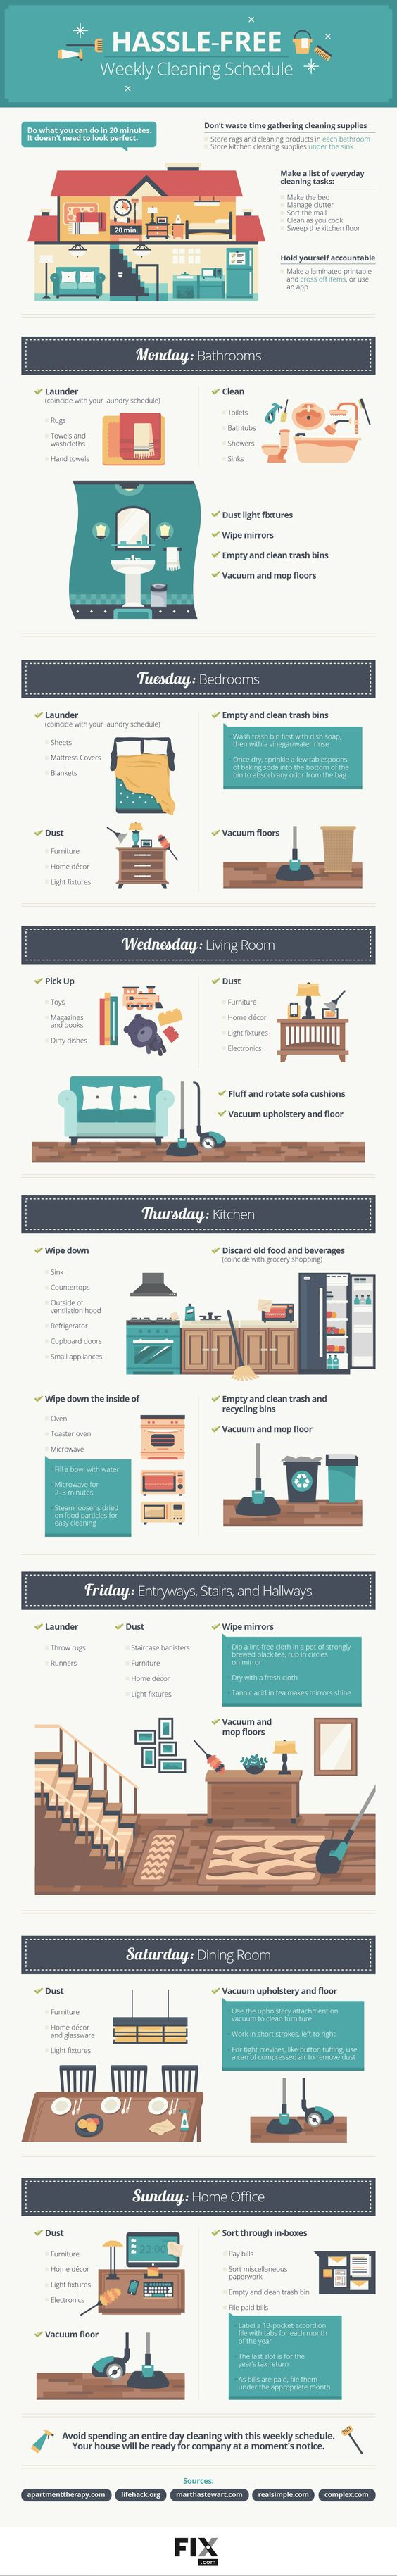 How to put together a hassle-free weekly cleaning schedule.